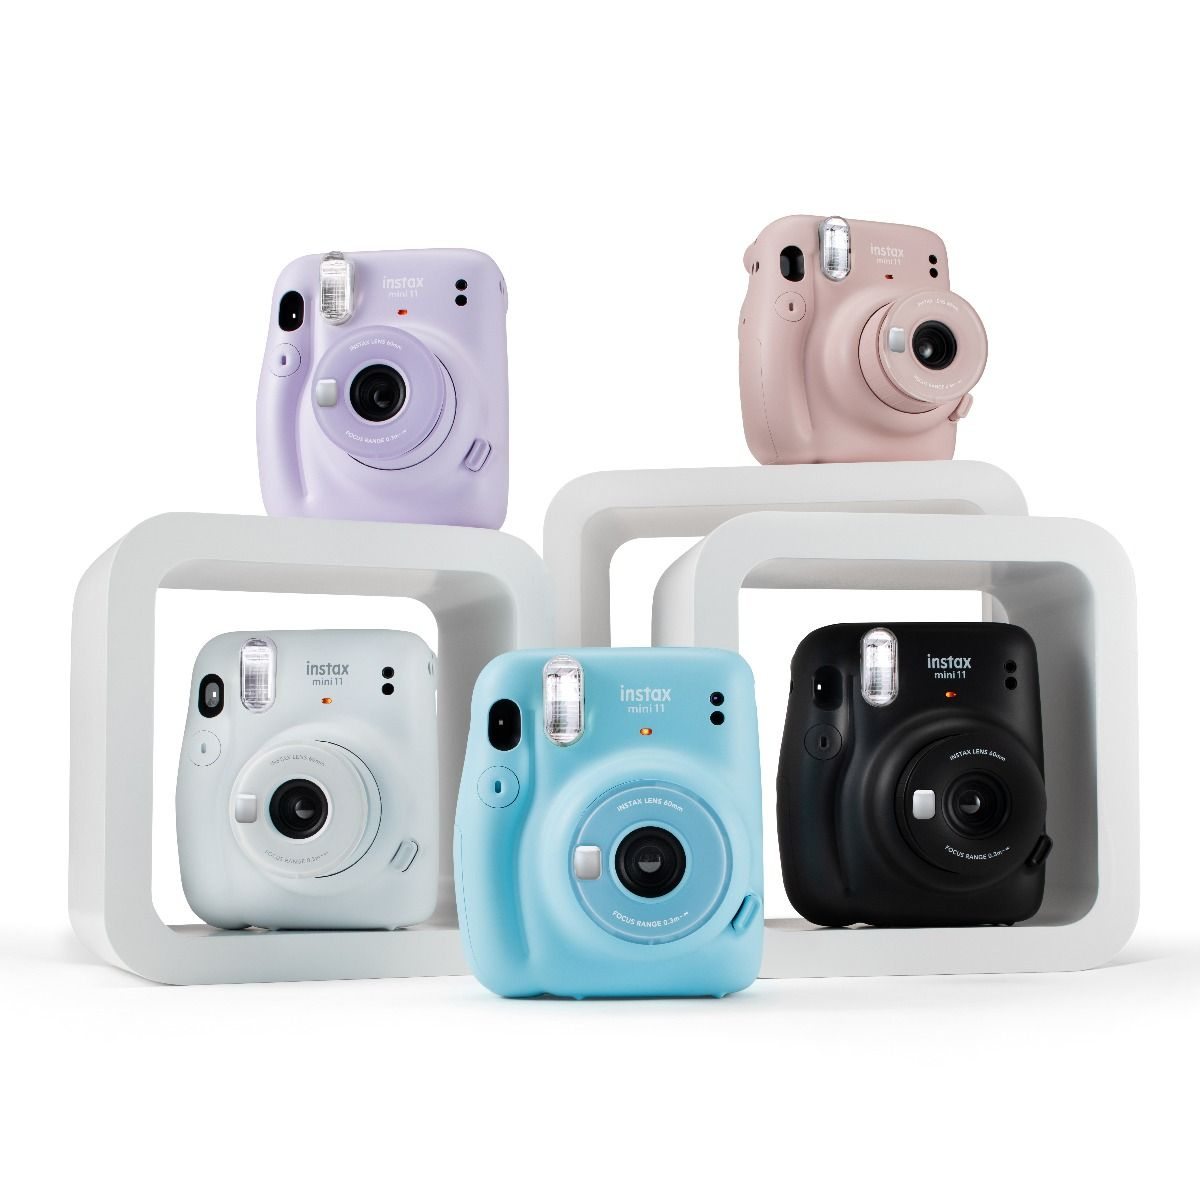 Mini 11: There's a new Instax in town